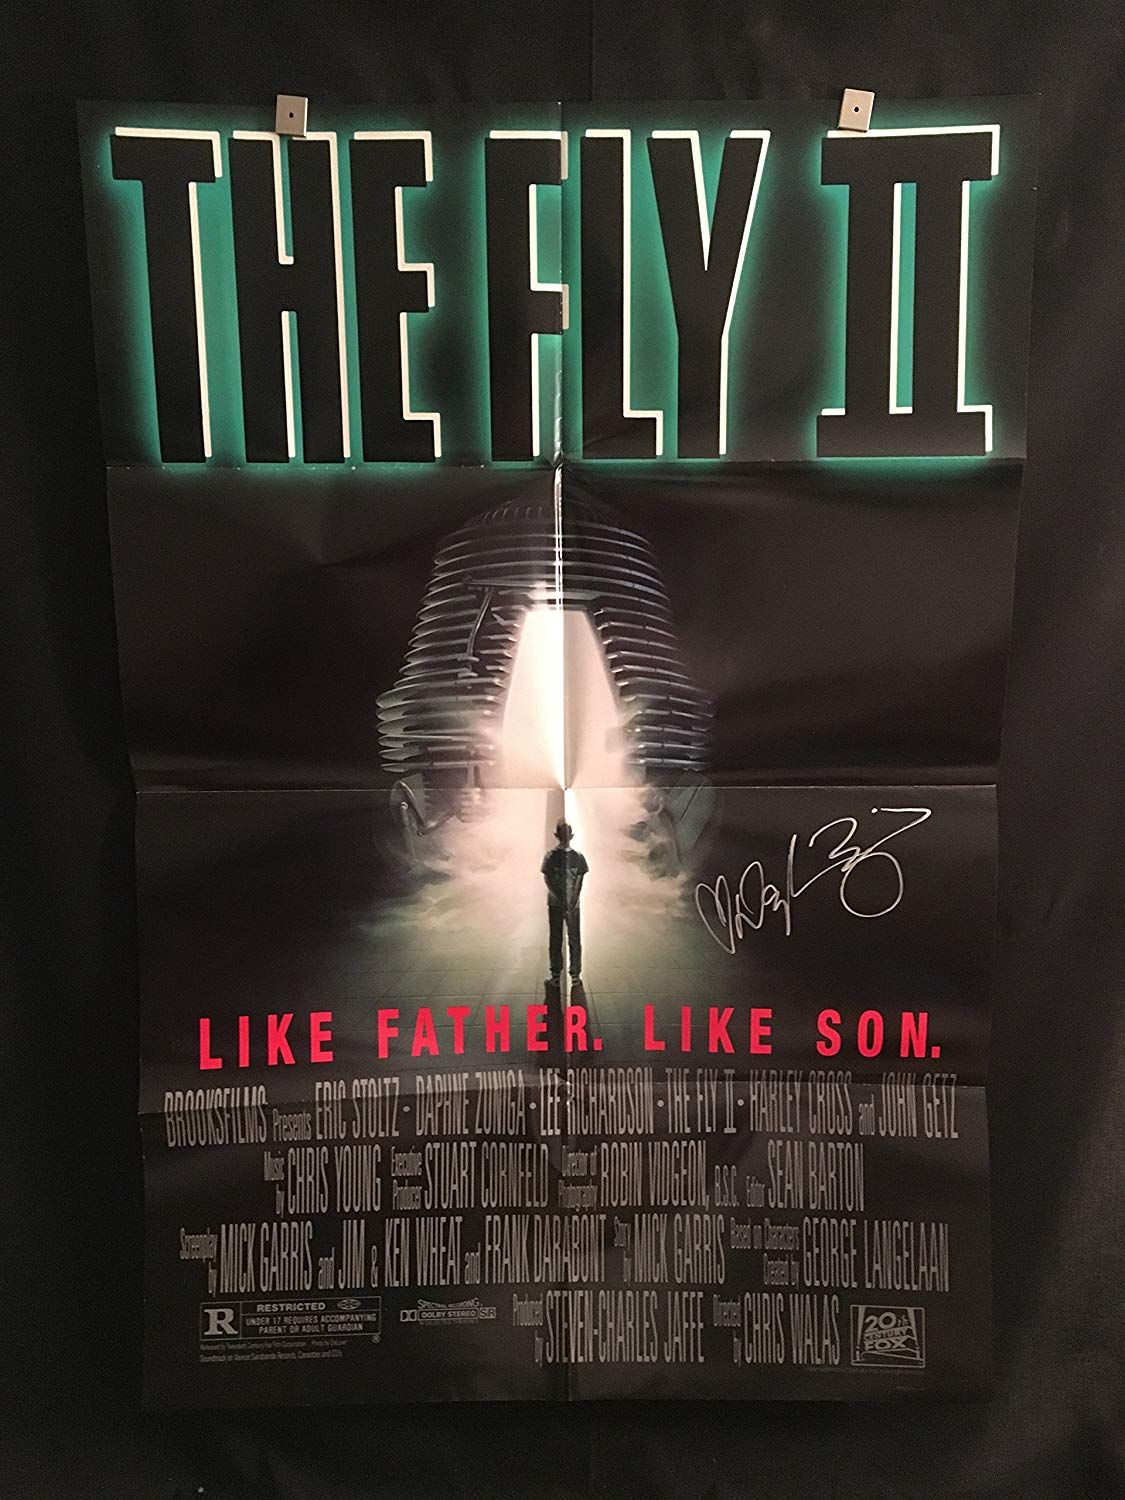 Halloween 2020 Autographed Poster The Fly 2 1989 Daphne Zuniga Signed Movie Poster, Horror in 2020